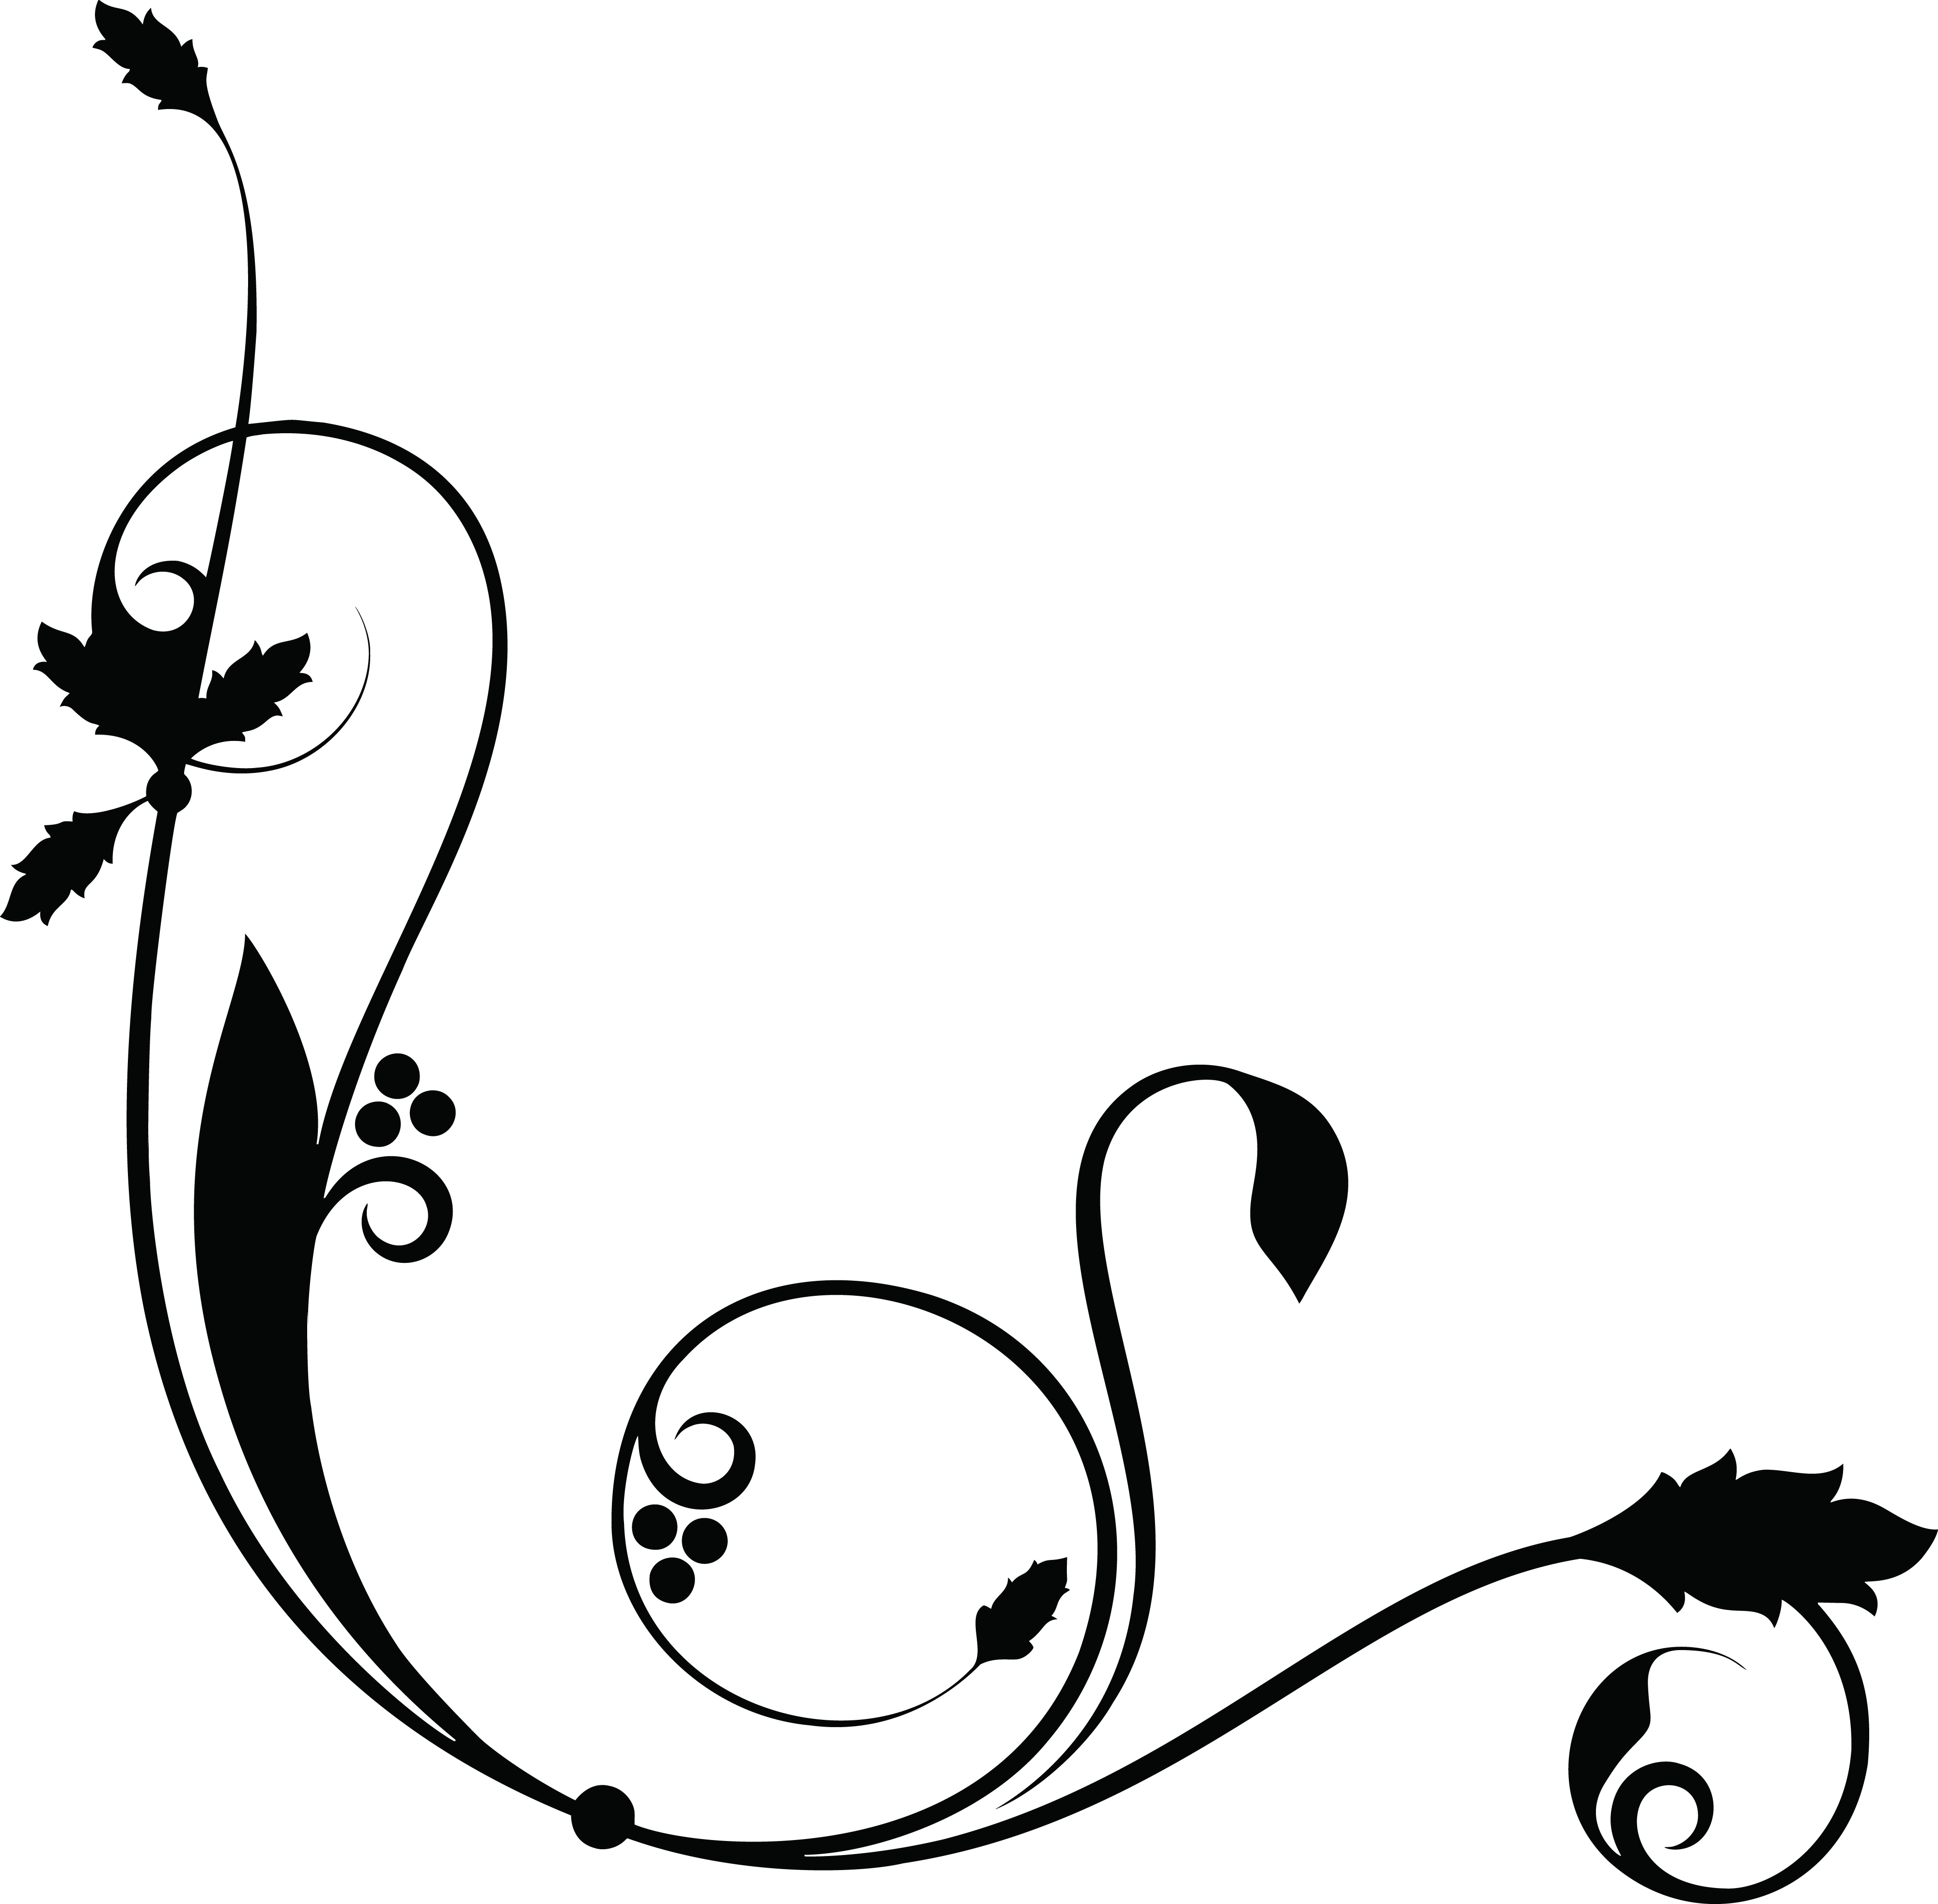 Free Clipart Of a Decorative Border.